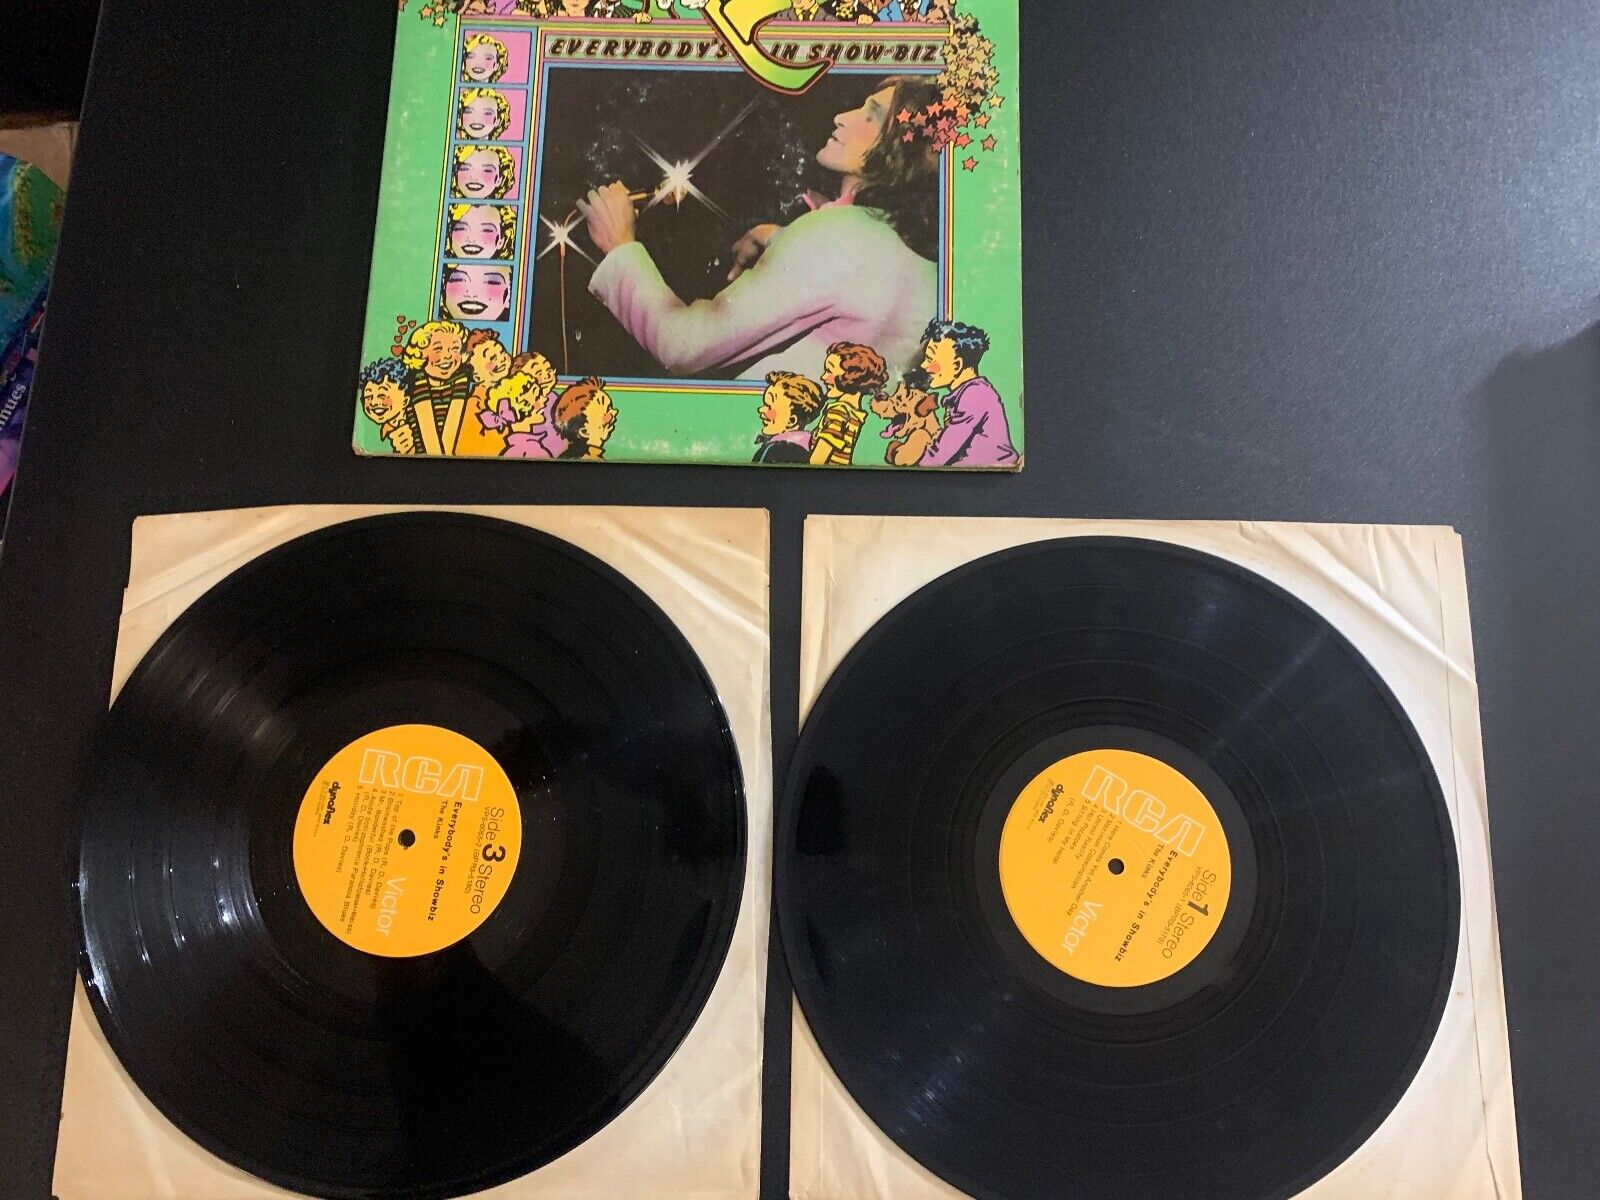 LP RECORD - THE KINKS - EVERYBODY S IN SHOW-BIZ DOUBLE LP RCA VICTOR - $9.99